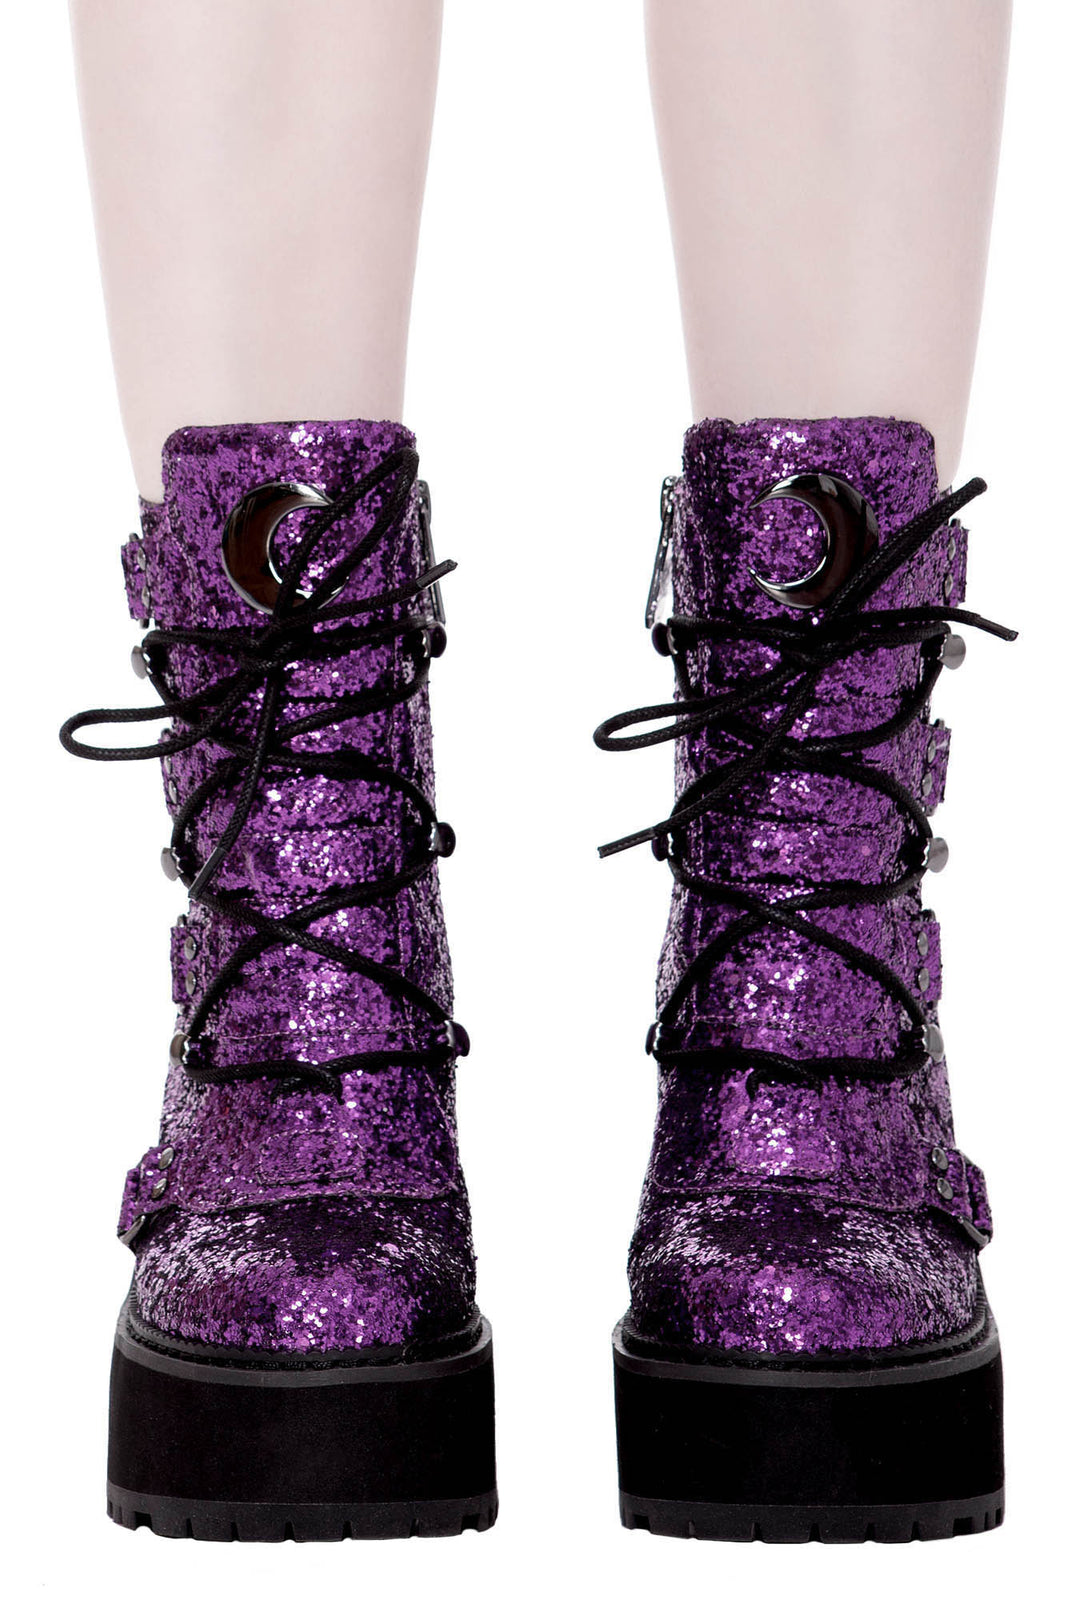 Broom Rider Boots [PURPLE GLITTER]